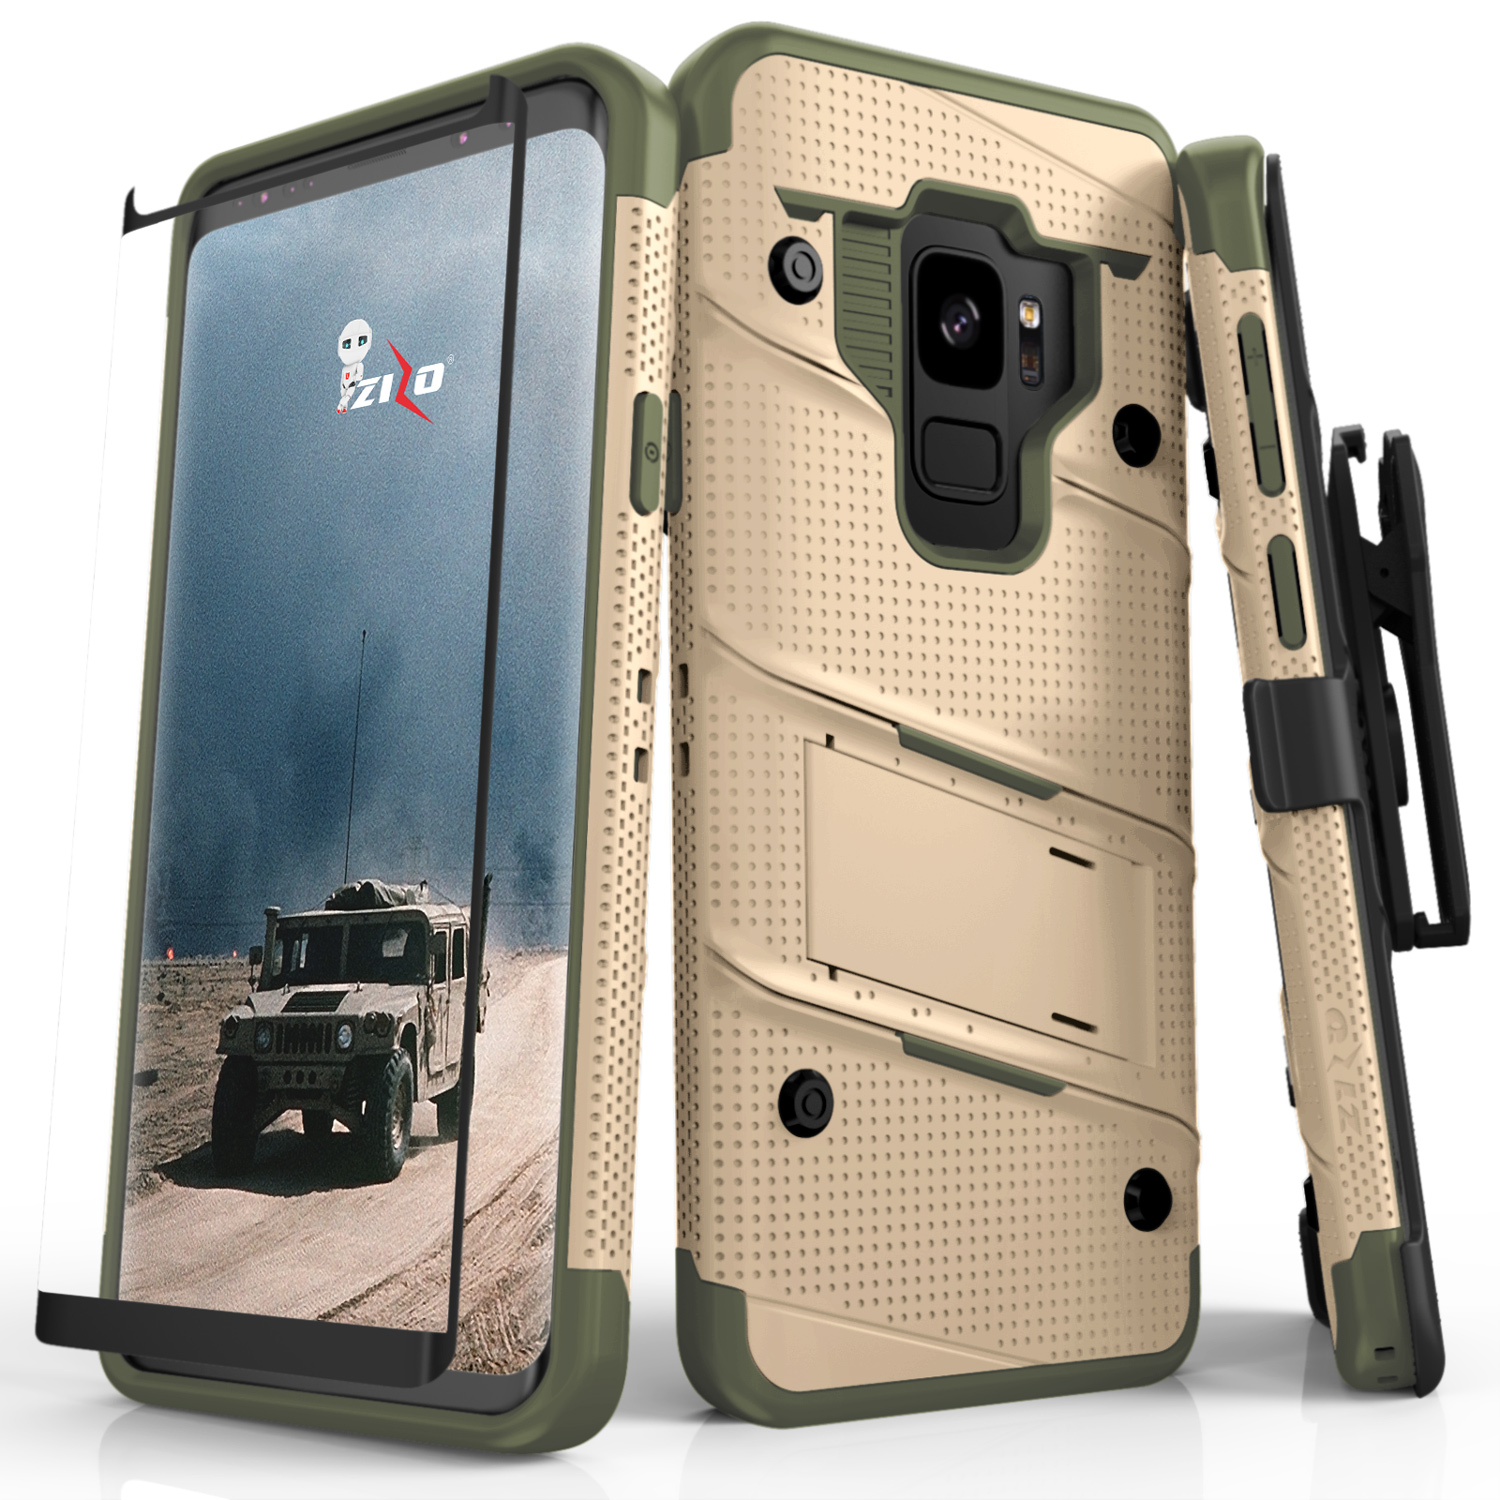 new styles 374e3 c50b9 Samsung Galaxy S9 - BOLT Case Cover With Kickstand Holster Full Curved  Glass Screen Protector, Lanyard - Camo Green